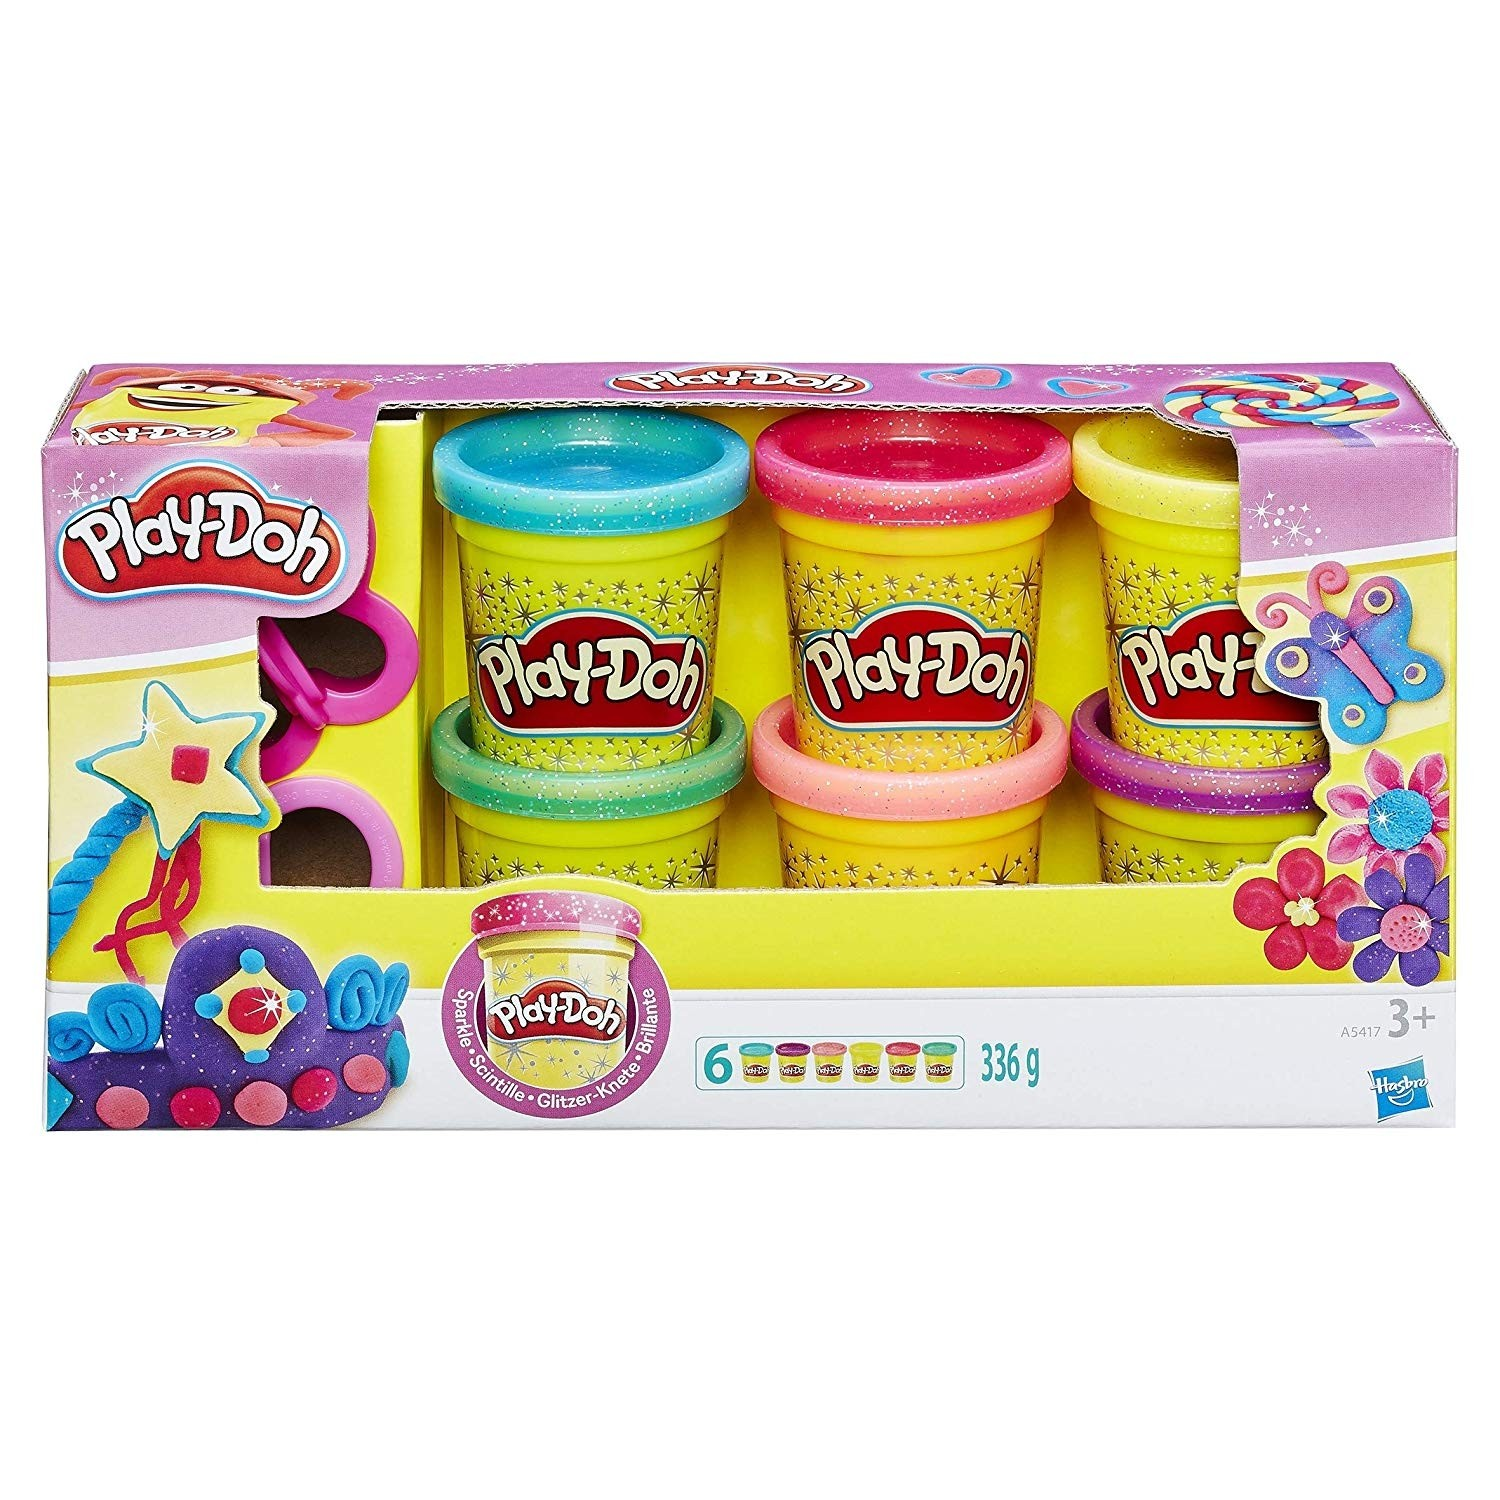 Play -doh Sparkle Compound Collection